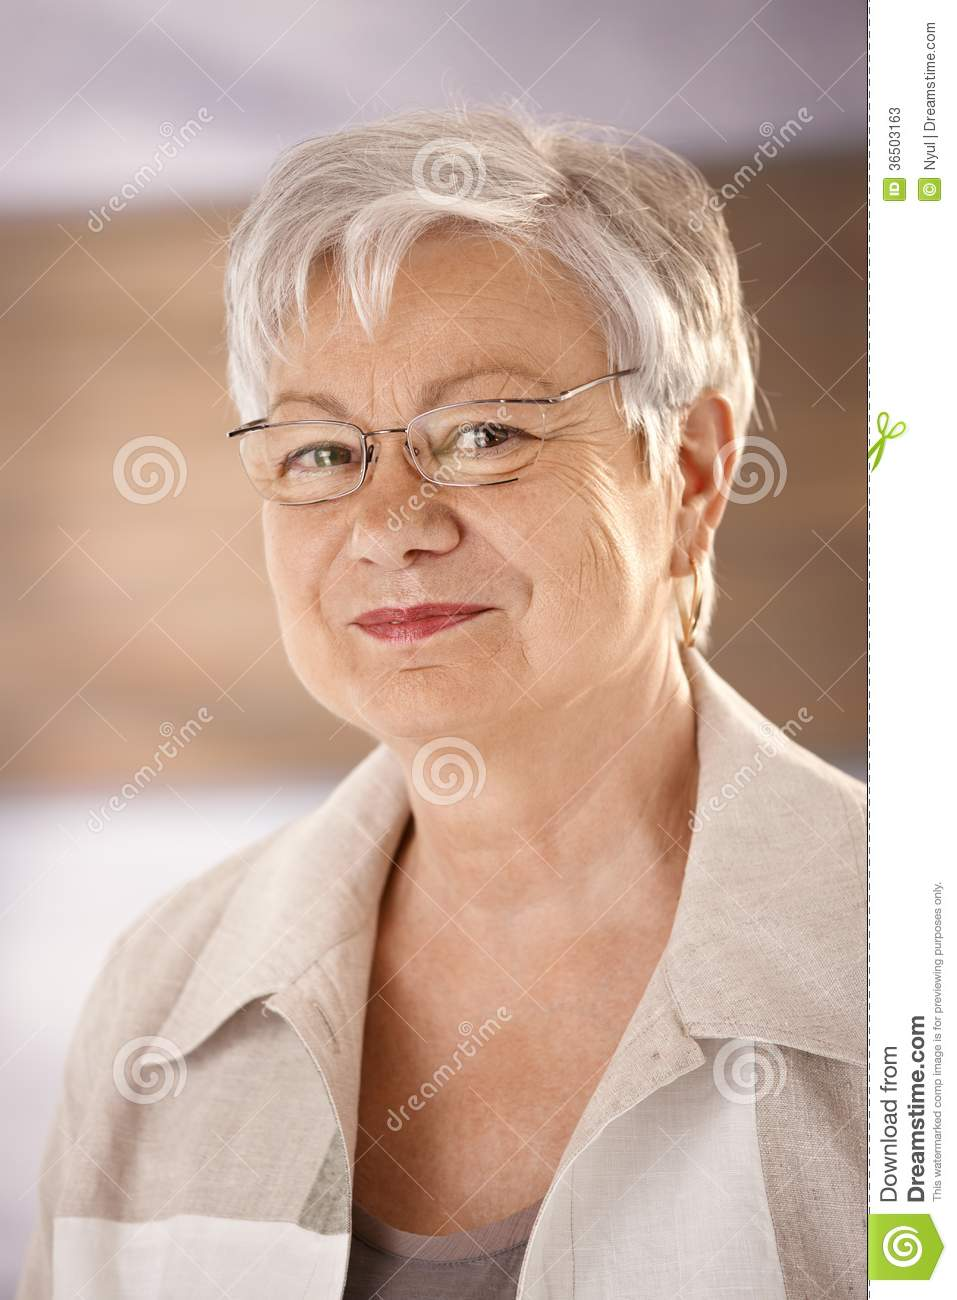 Portrait of elderly woman with glasses